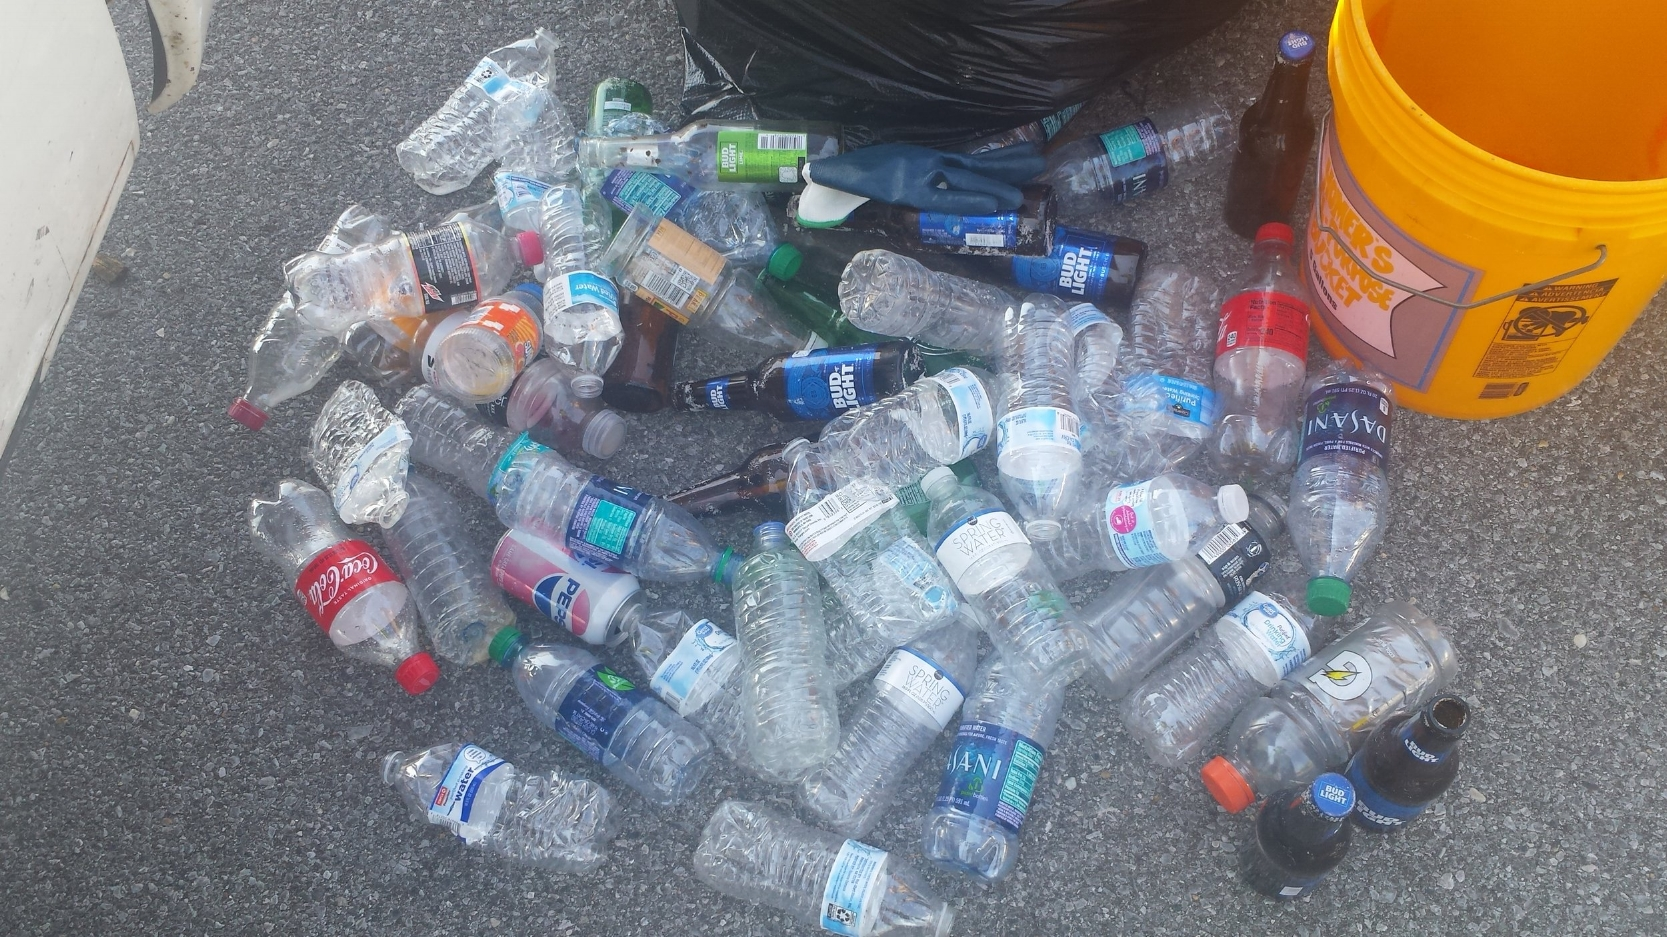 - 33 Volunteers picked up 160 lbs of trash bringing monthly total to 811 lbs. For the month 237 water bottles . Observation - in an area picked up 47 water bottle lids and ONLY 1 water bottle! Where are the other 46?